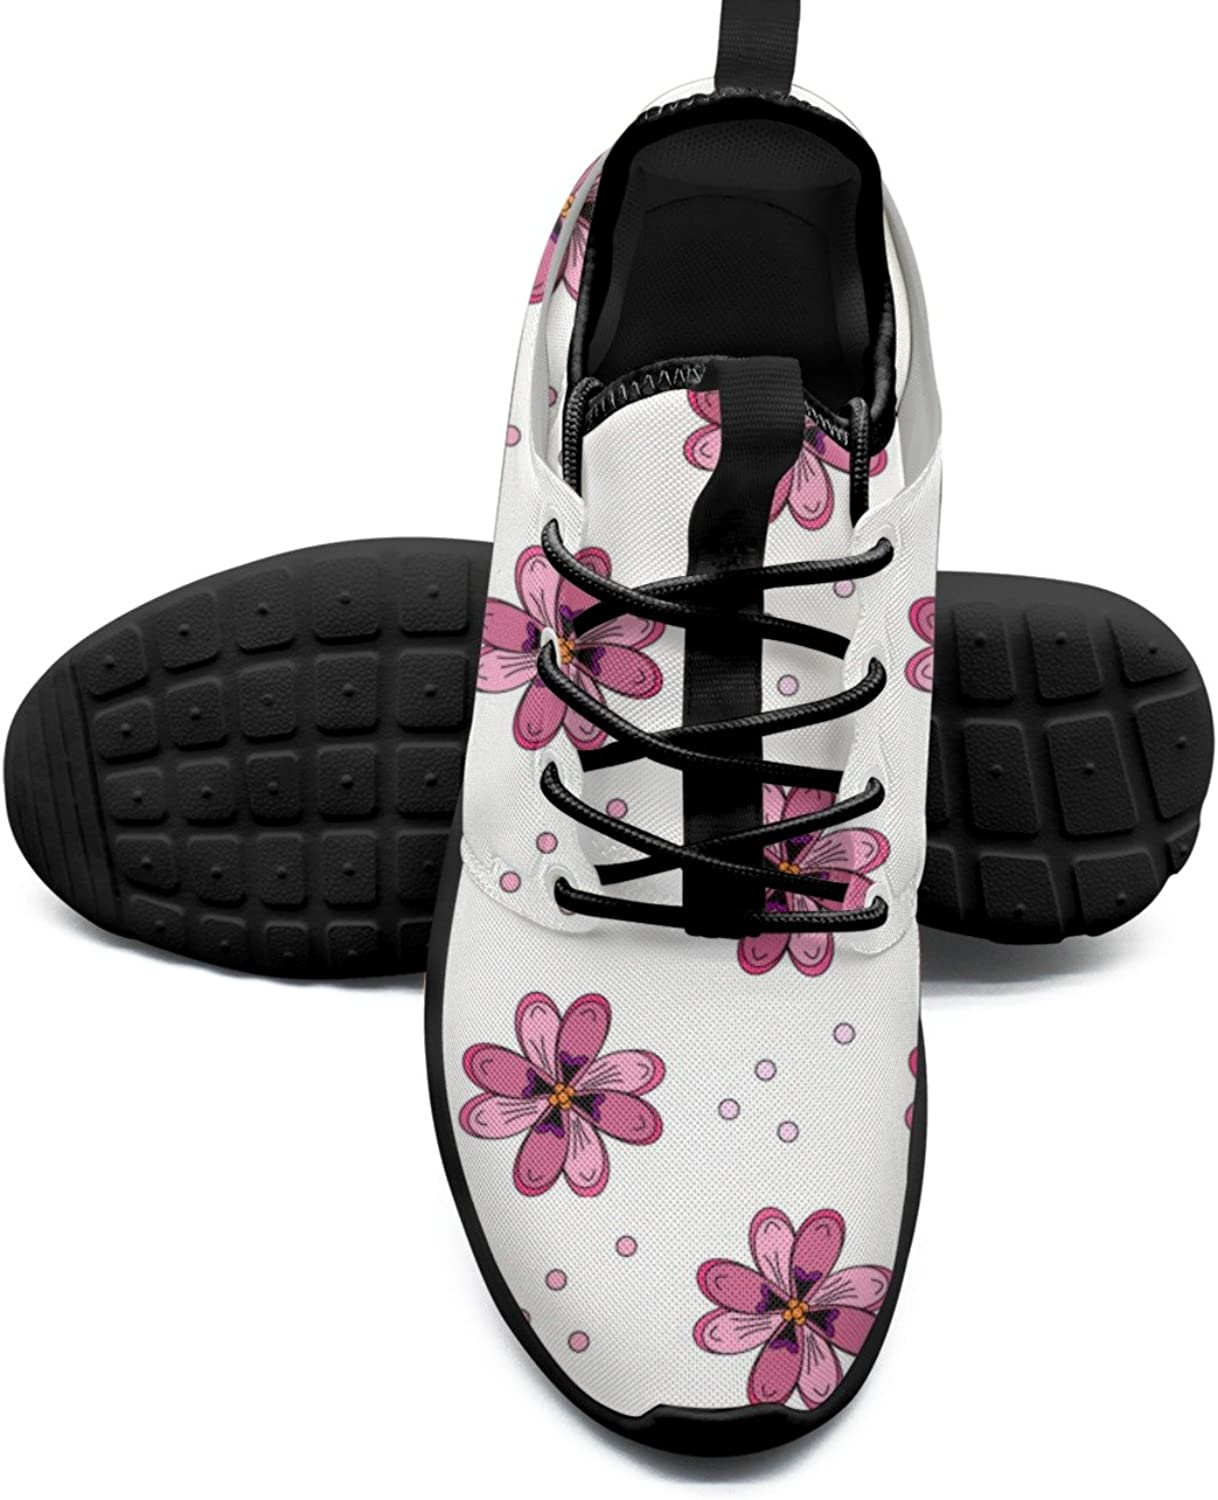 Pink Floral Cool Women's Sneakers shoes Retro Mesh Lightweight Tennis Sneakers